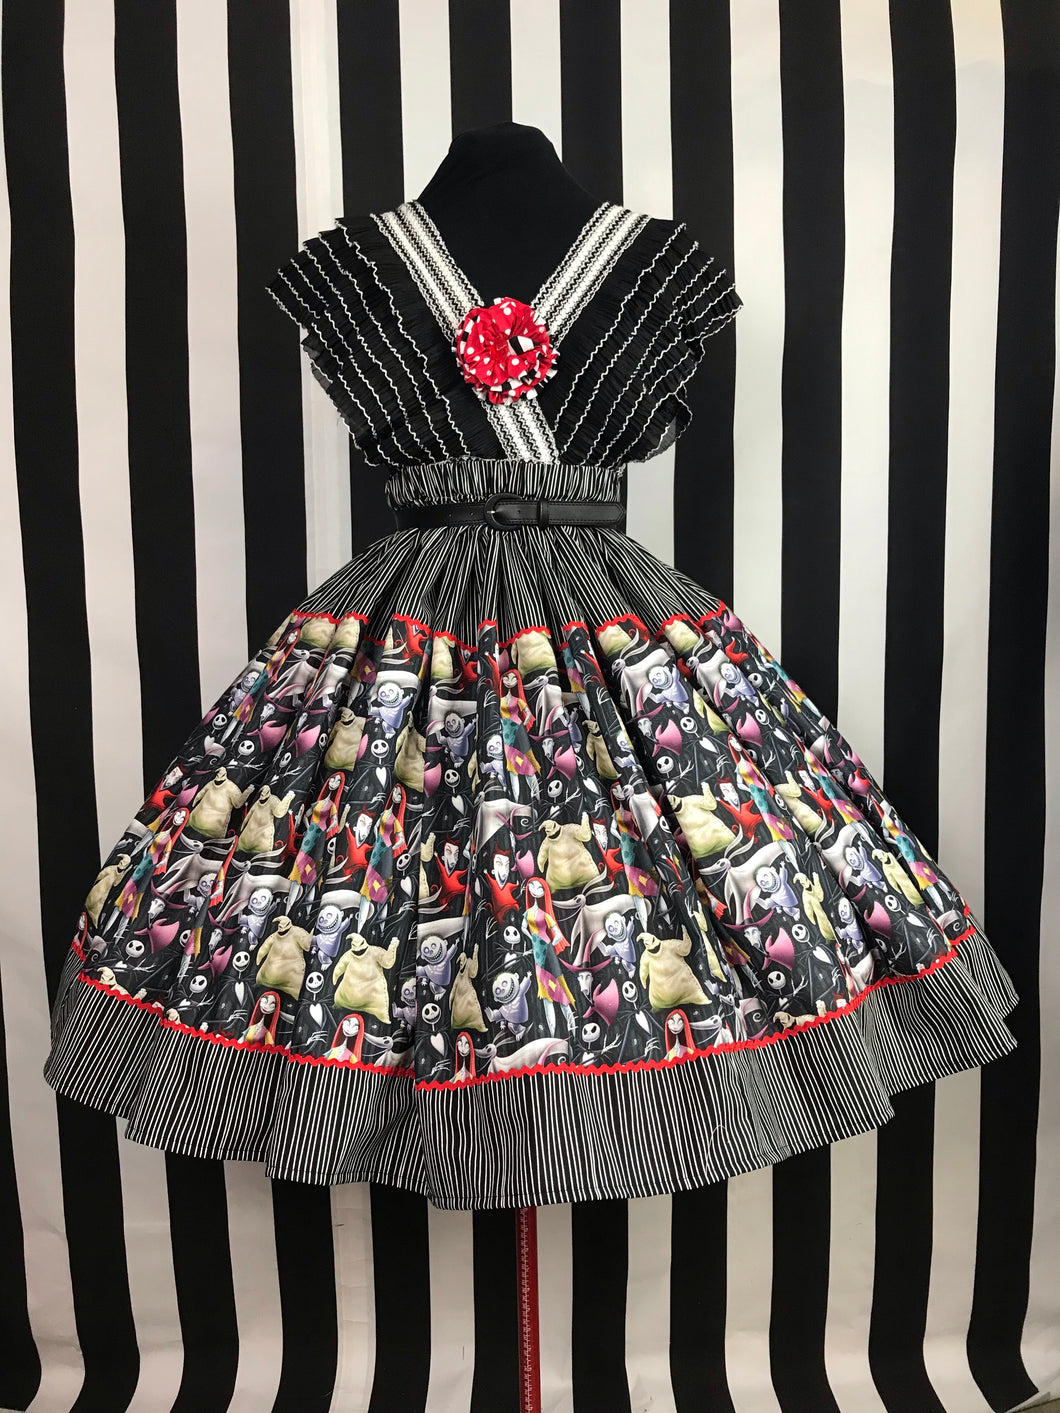 The nightmare gang skirt